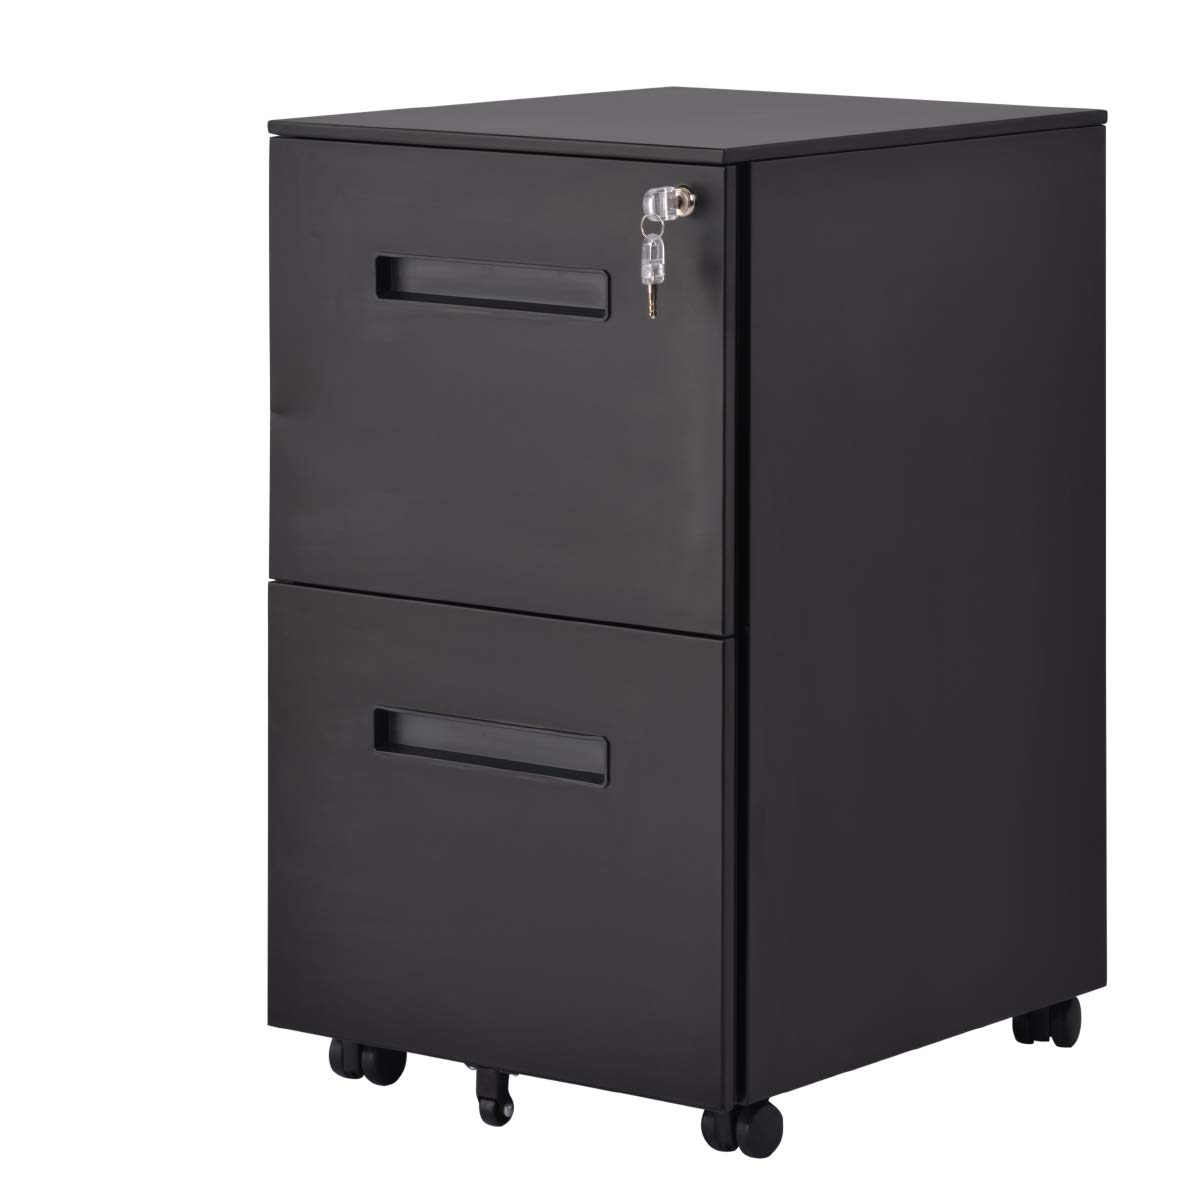 File Cabinet Mobile 2 Drawer Metal Pedestal Filing Cabinets with Lock Key 5 Rolling Casters Fully Assembled Home Office Modern Vertical Hanging Folders A4 Letter Legal Size